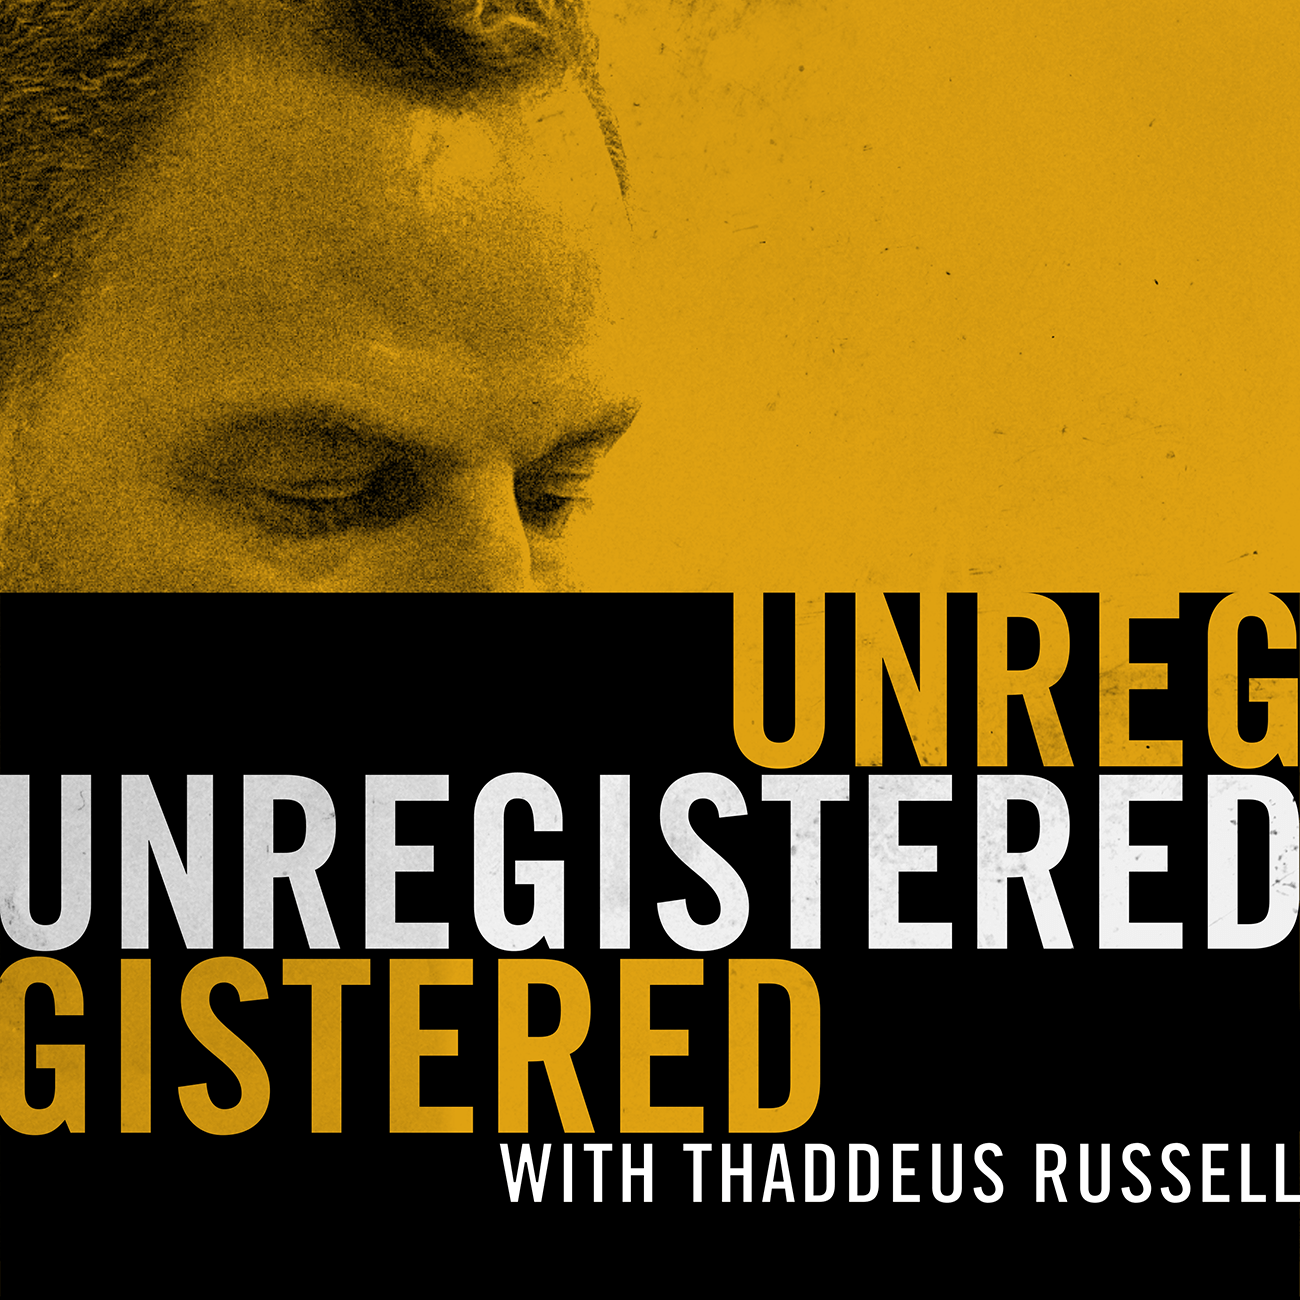 UNREGISTERED-002-SMALL.png